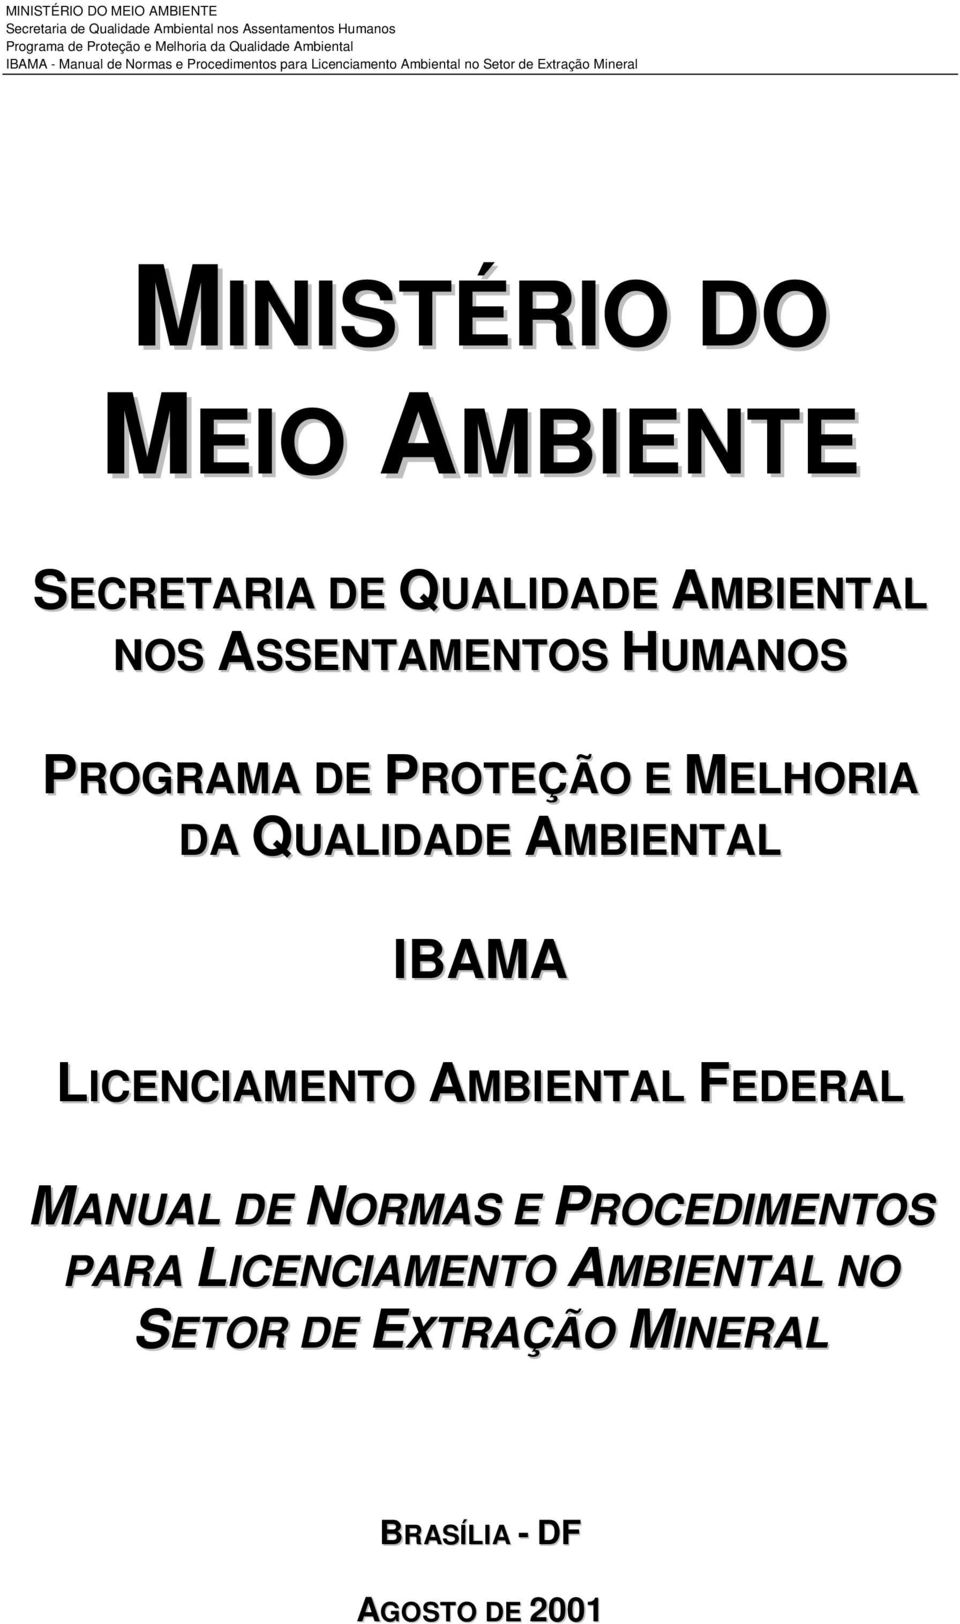 AMBIENTAL IBAMA LICENCIAMENTO AMBIENTAL FEDERAL MANUAL DE NORMAS E